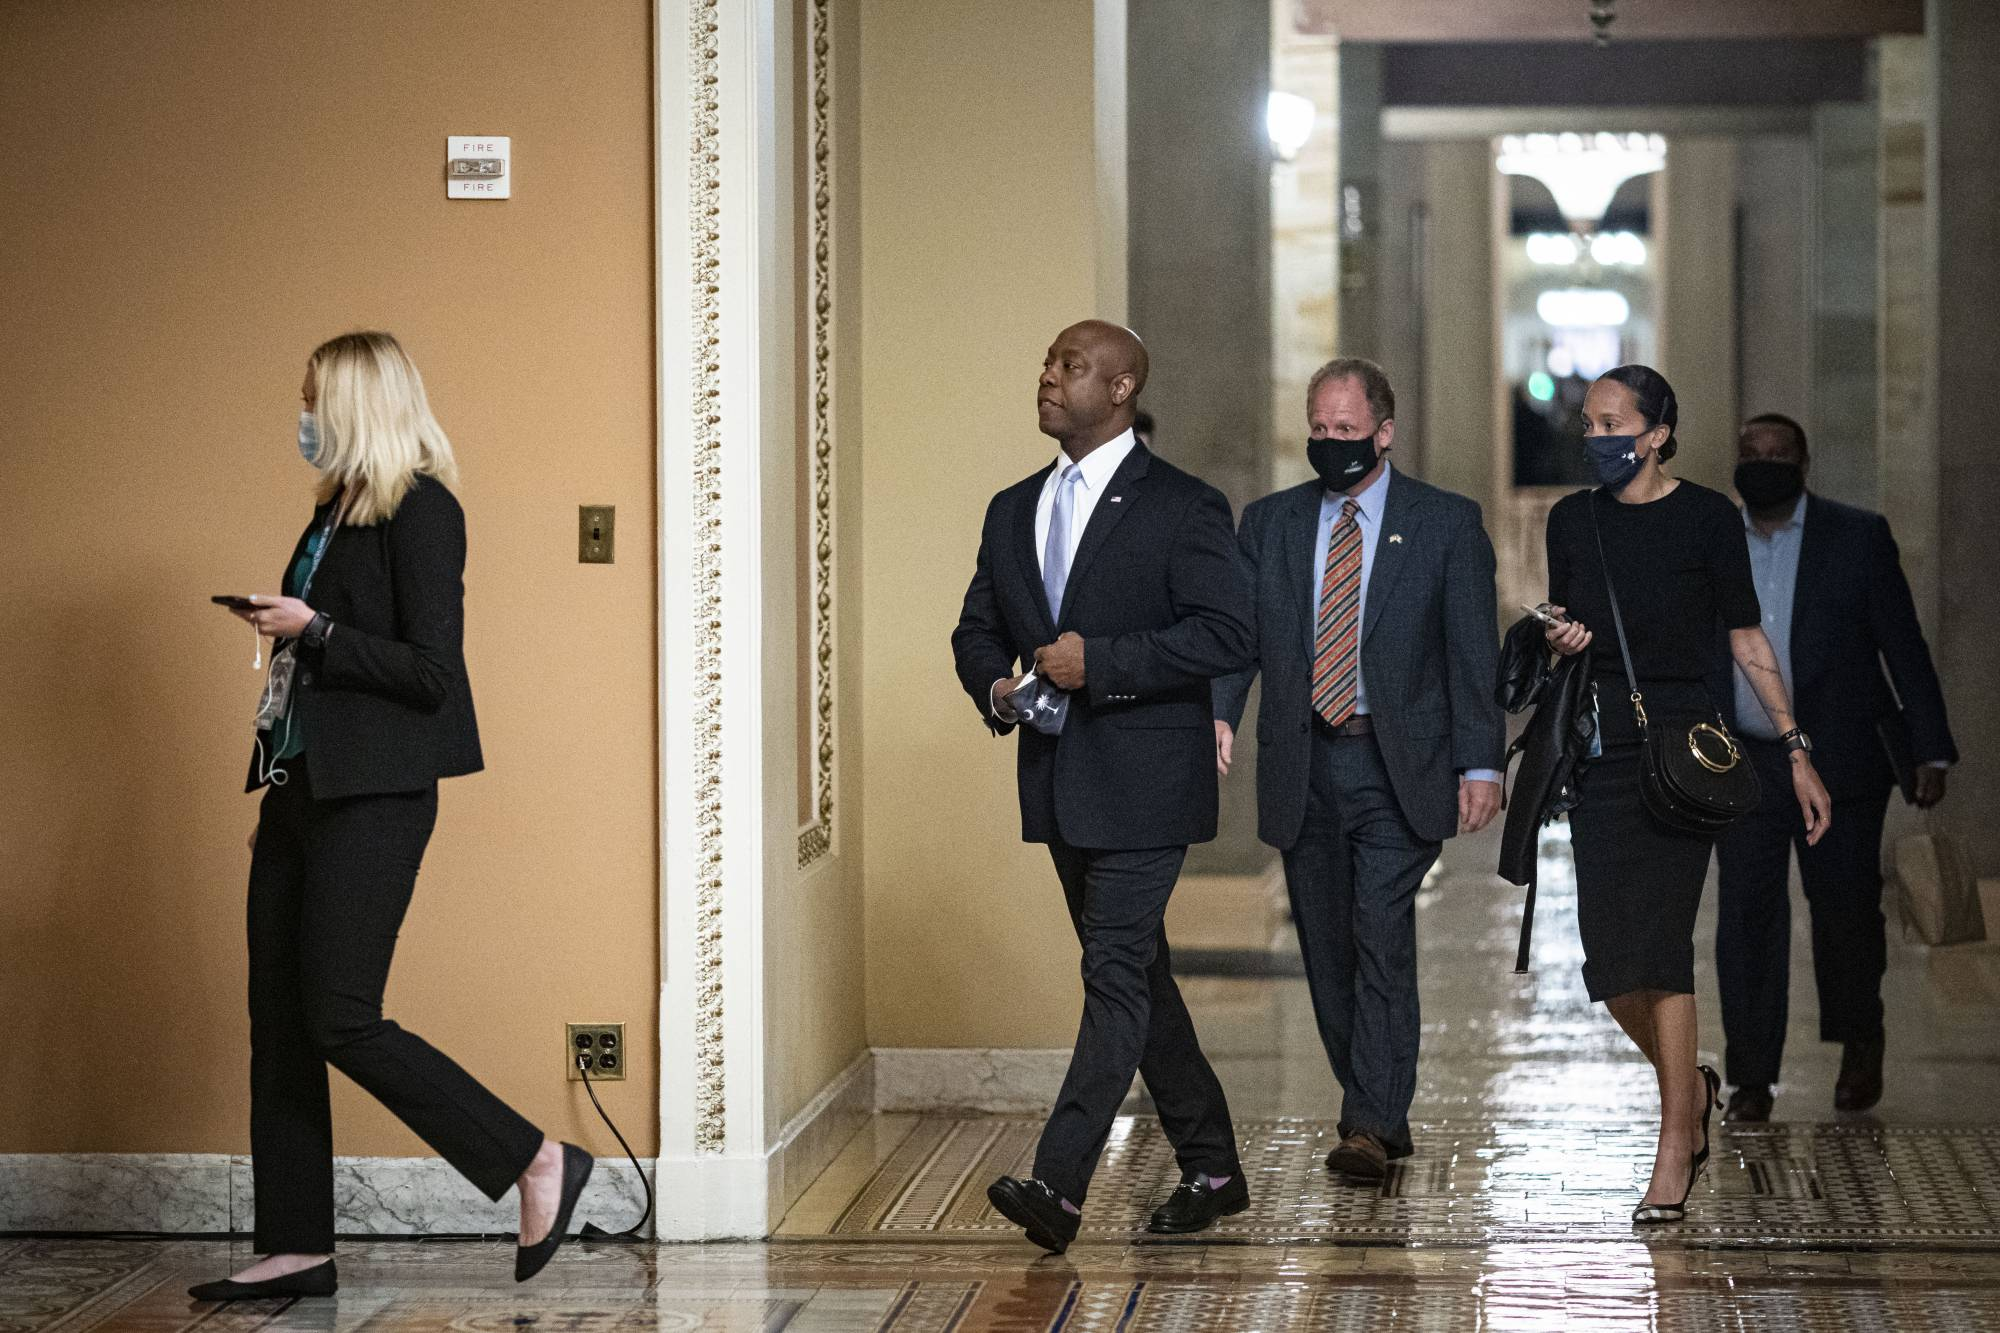 Senator Tim Scott, a Republican from South Carolina, center, arrives to deliver the GOP response to President Biden's address to Congress on Wednesday. | BLOOMBERG